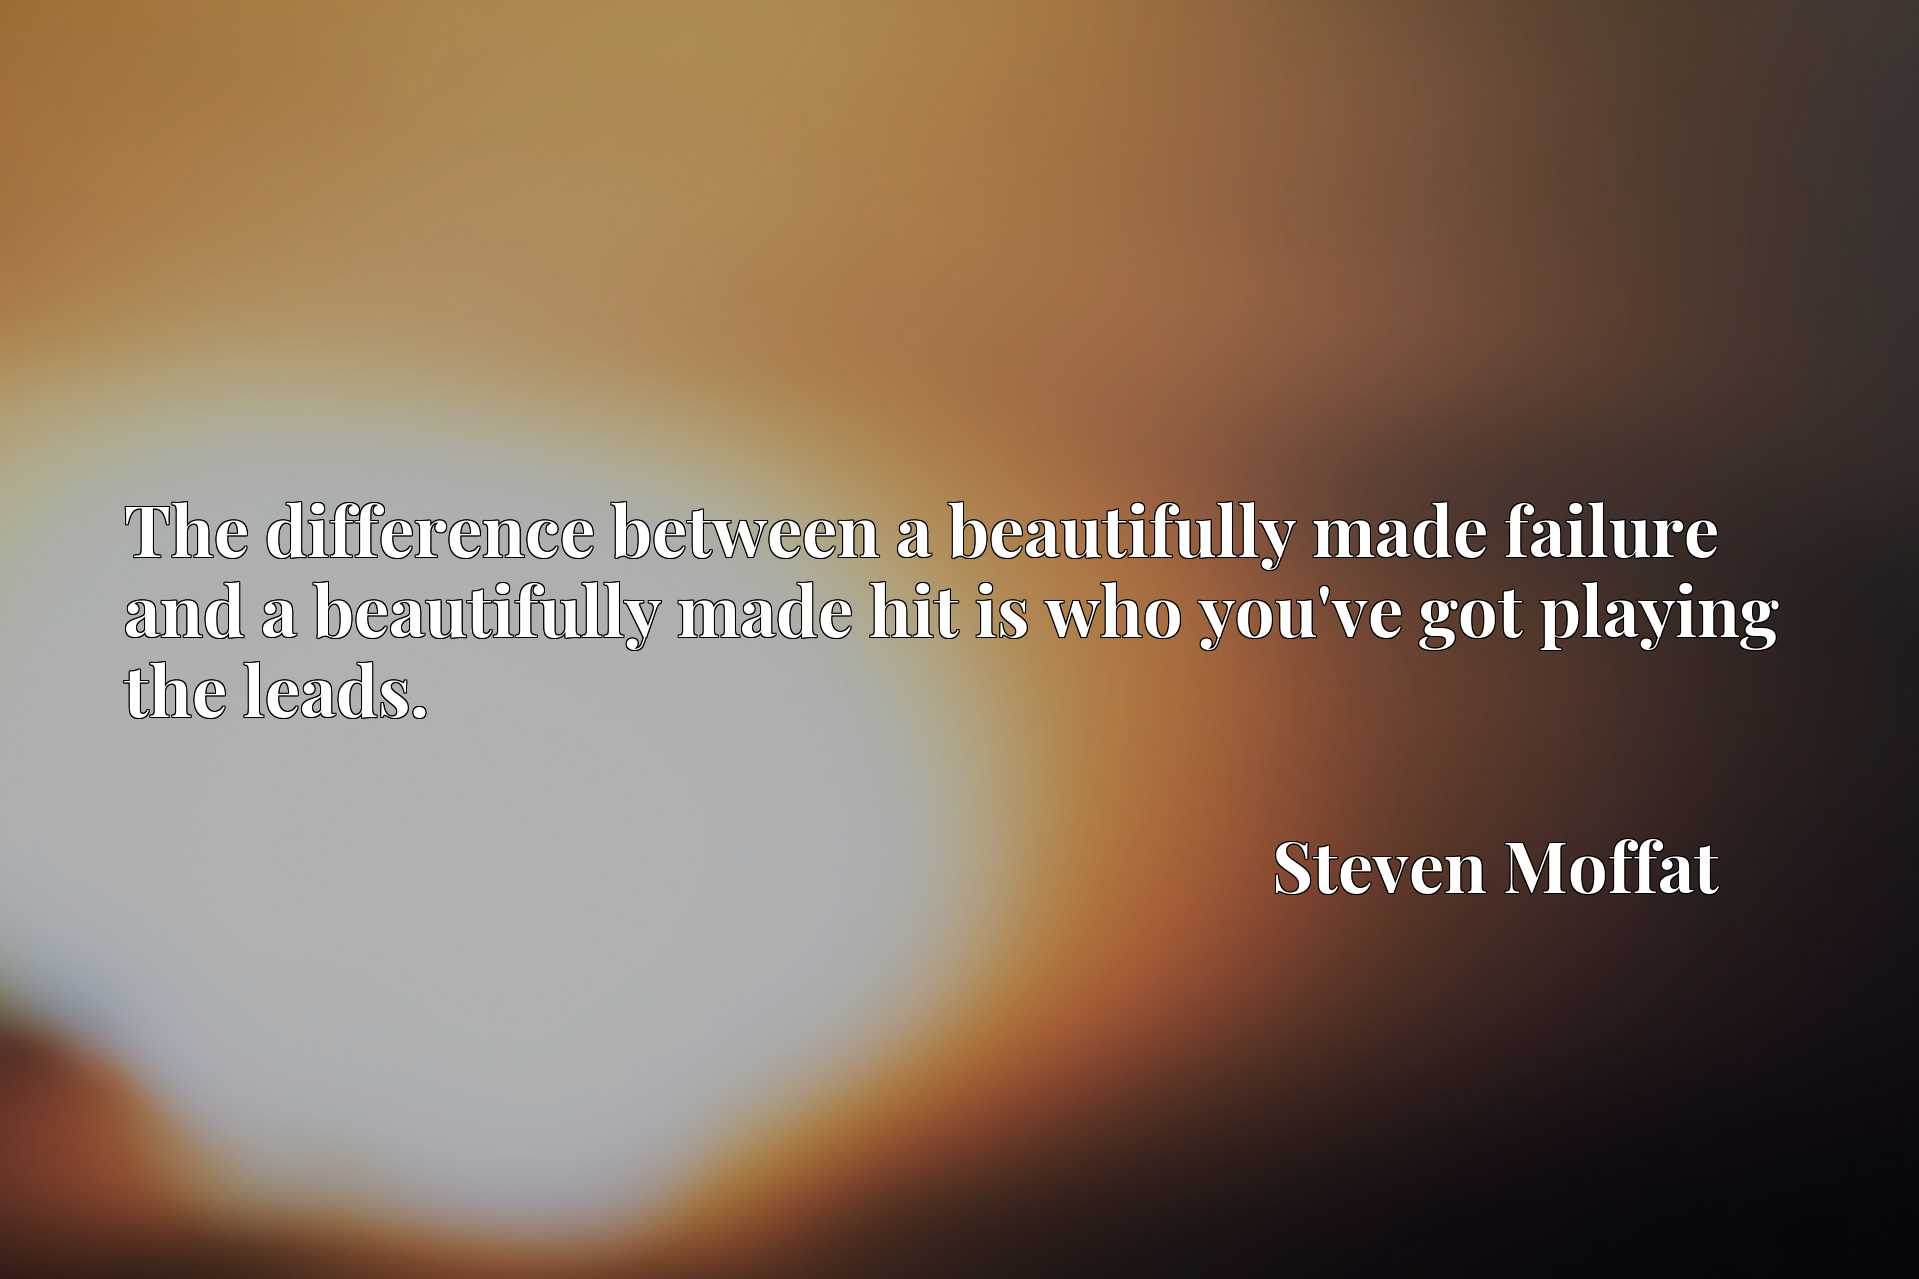 The difference between a beautifully made failure and a beautifully made hit is who you've got playing the leads.